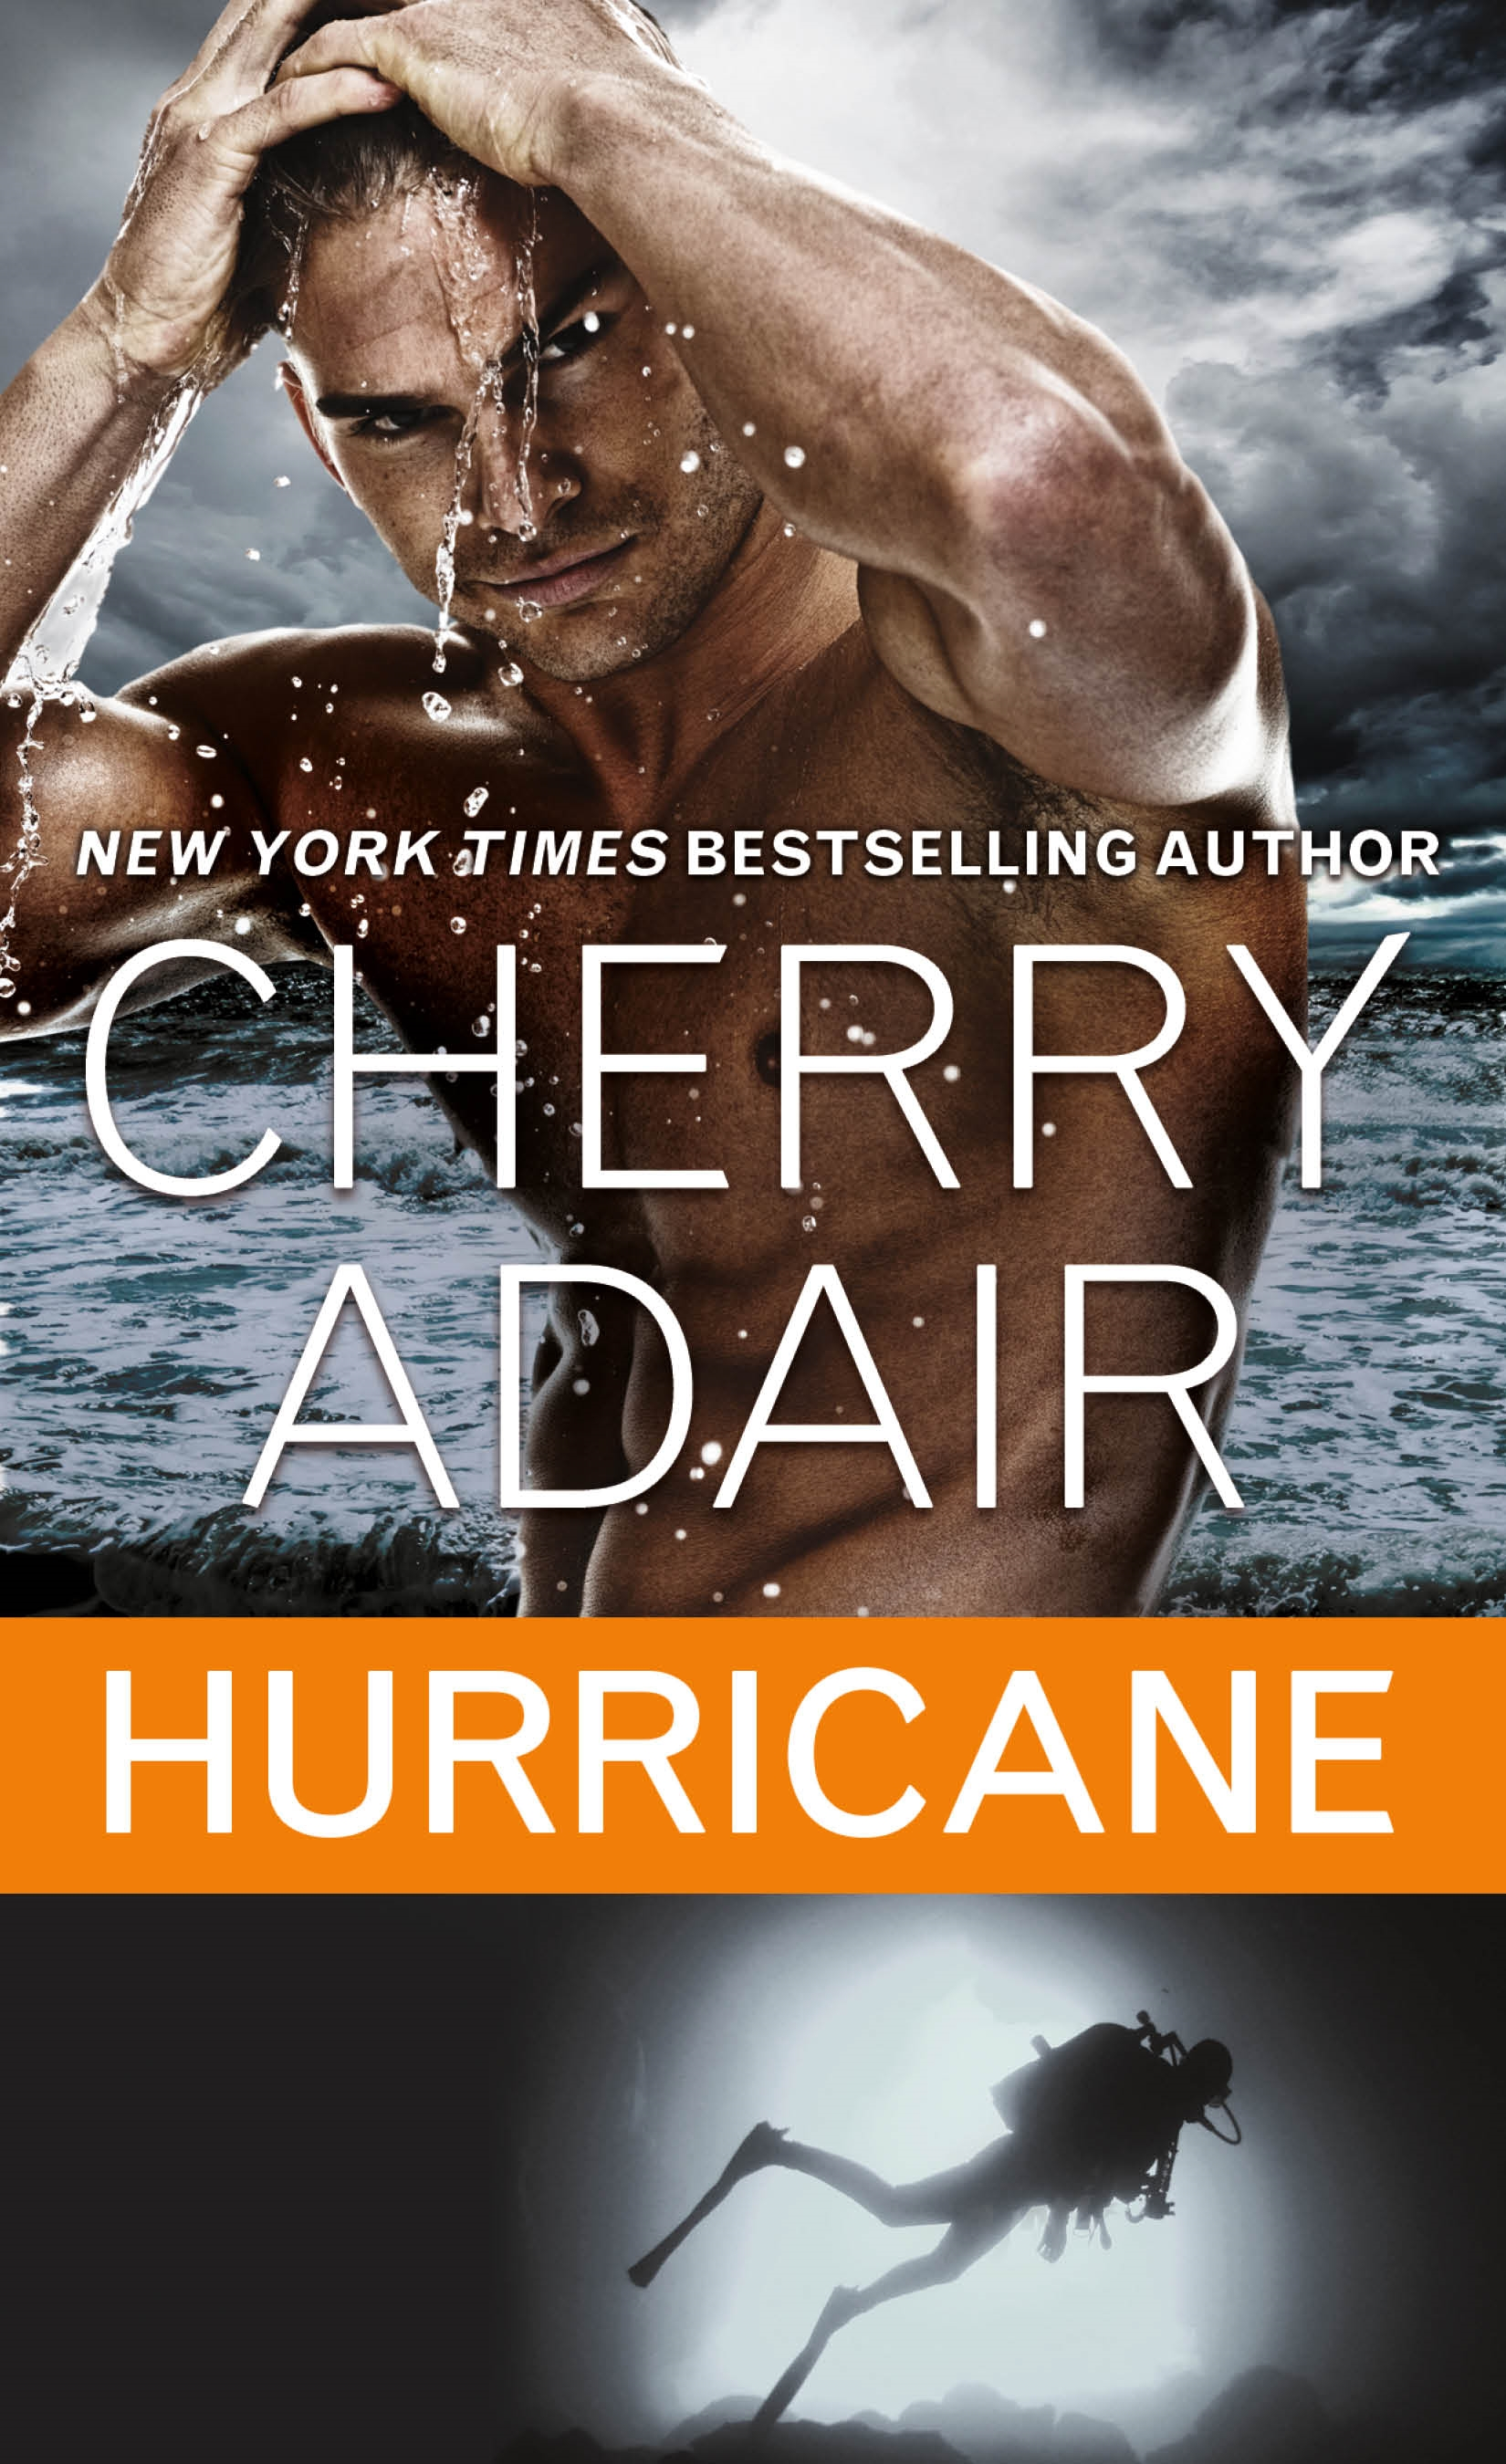 Hurricane by Cherry Adair